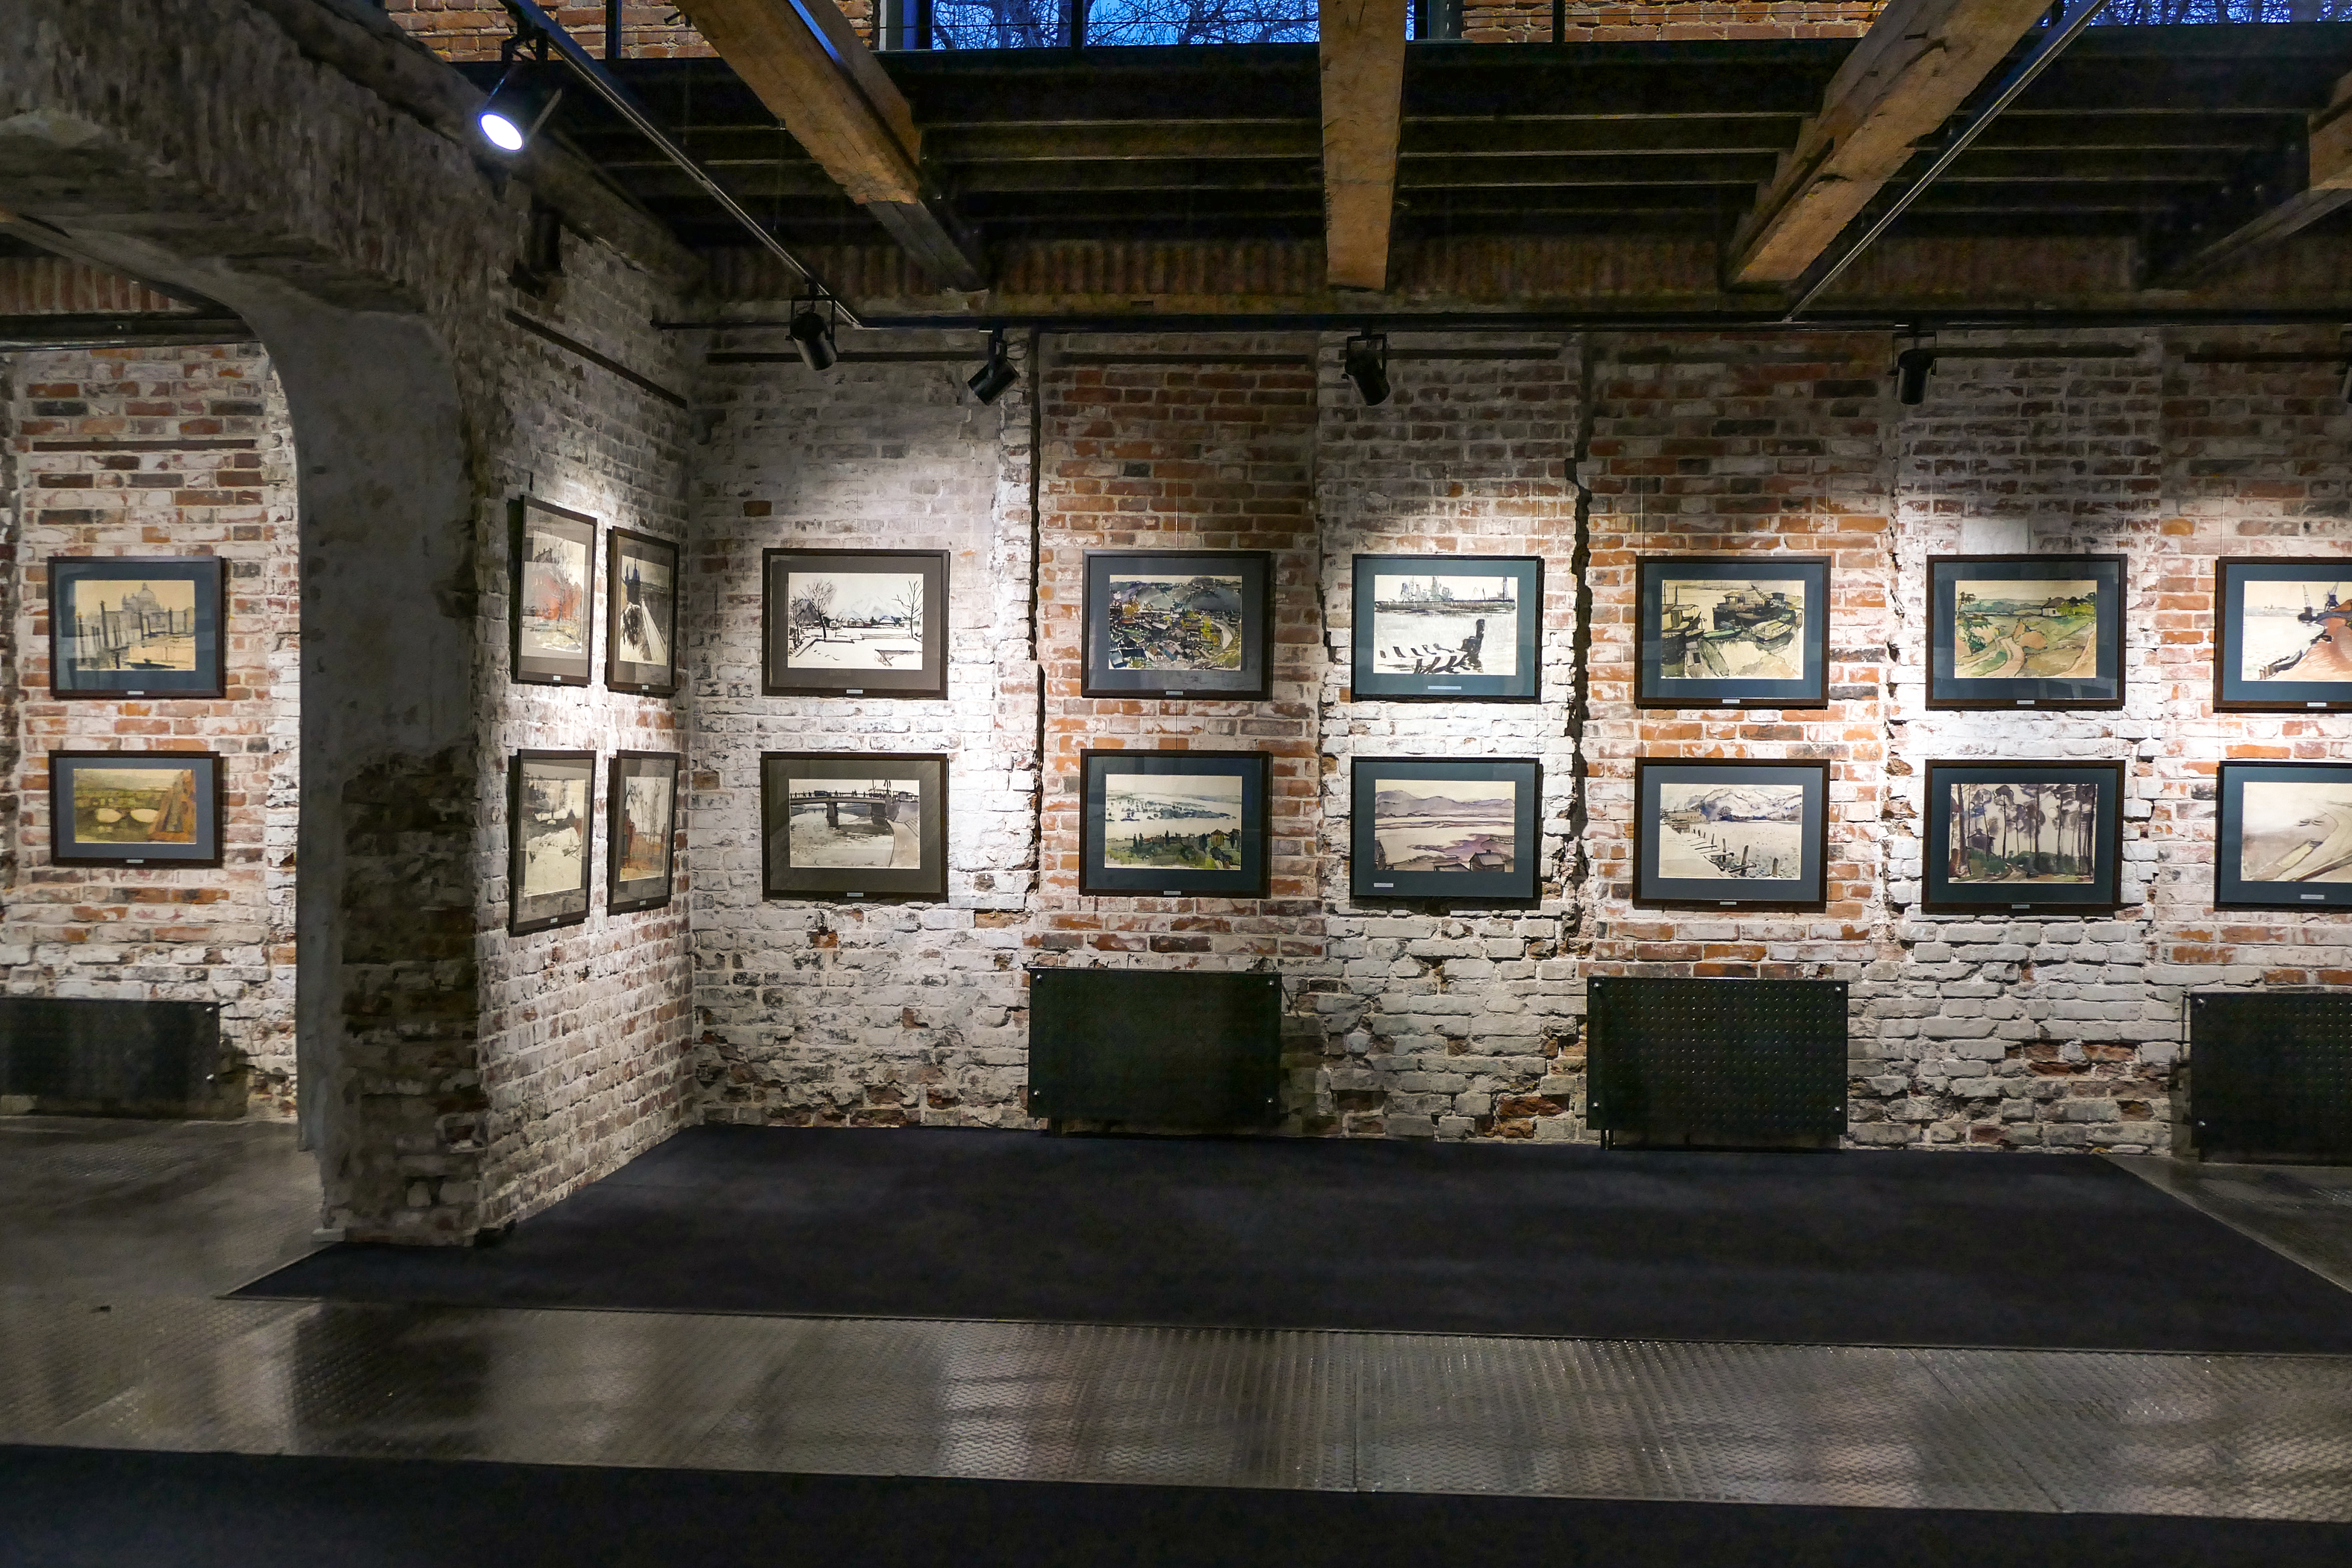 First level of exhibition view